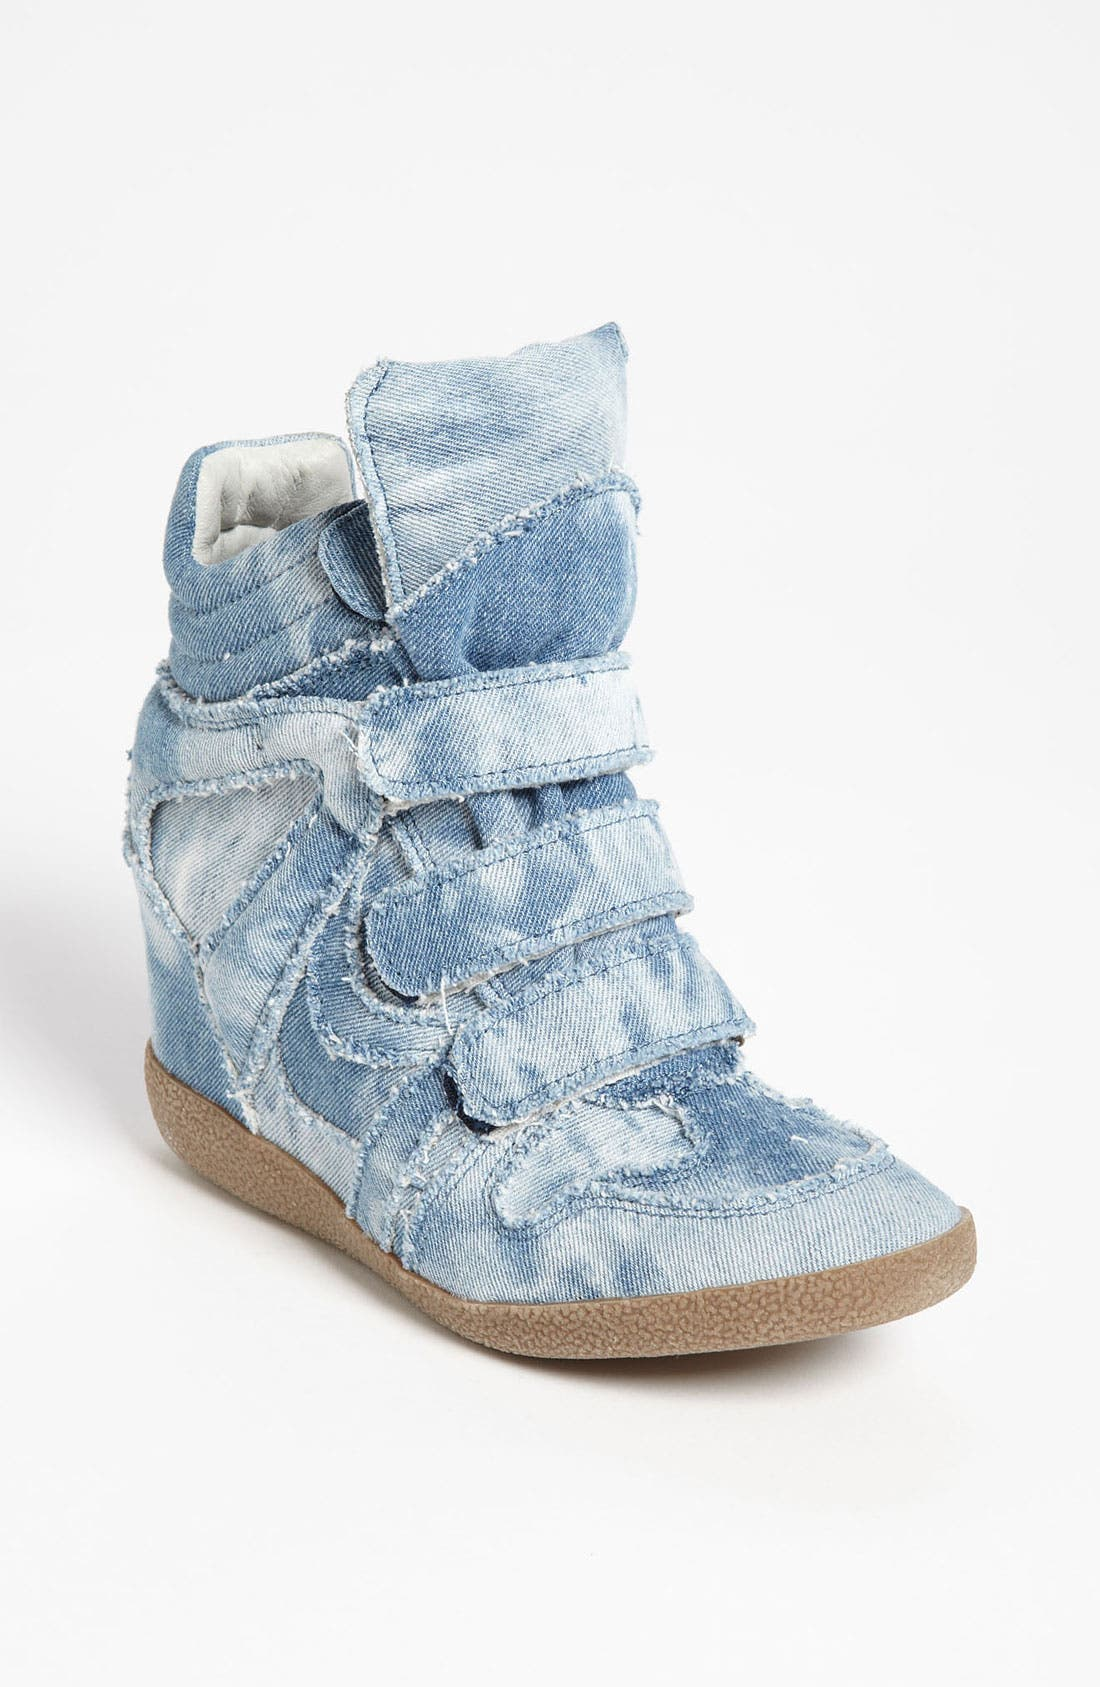 Alternate Image 1 Selected - Steve Madden 'Hilite-C' Wedge Sneaker